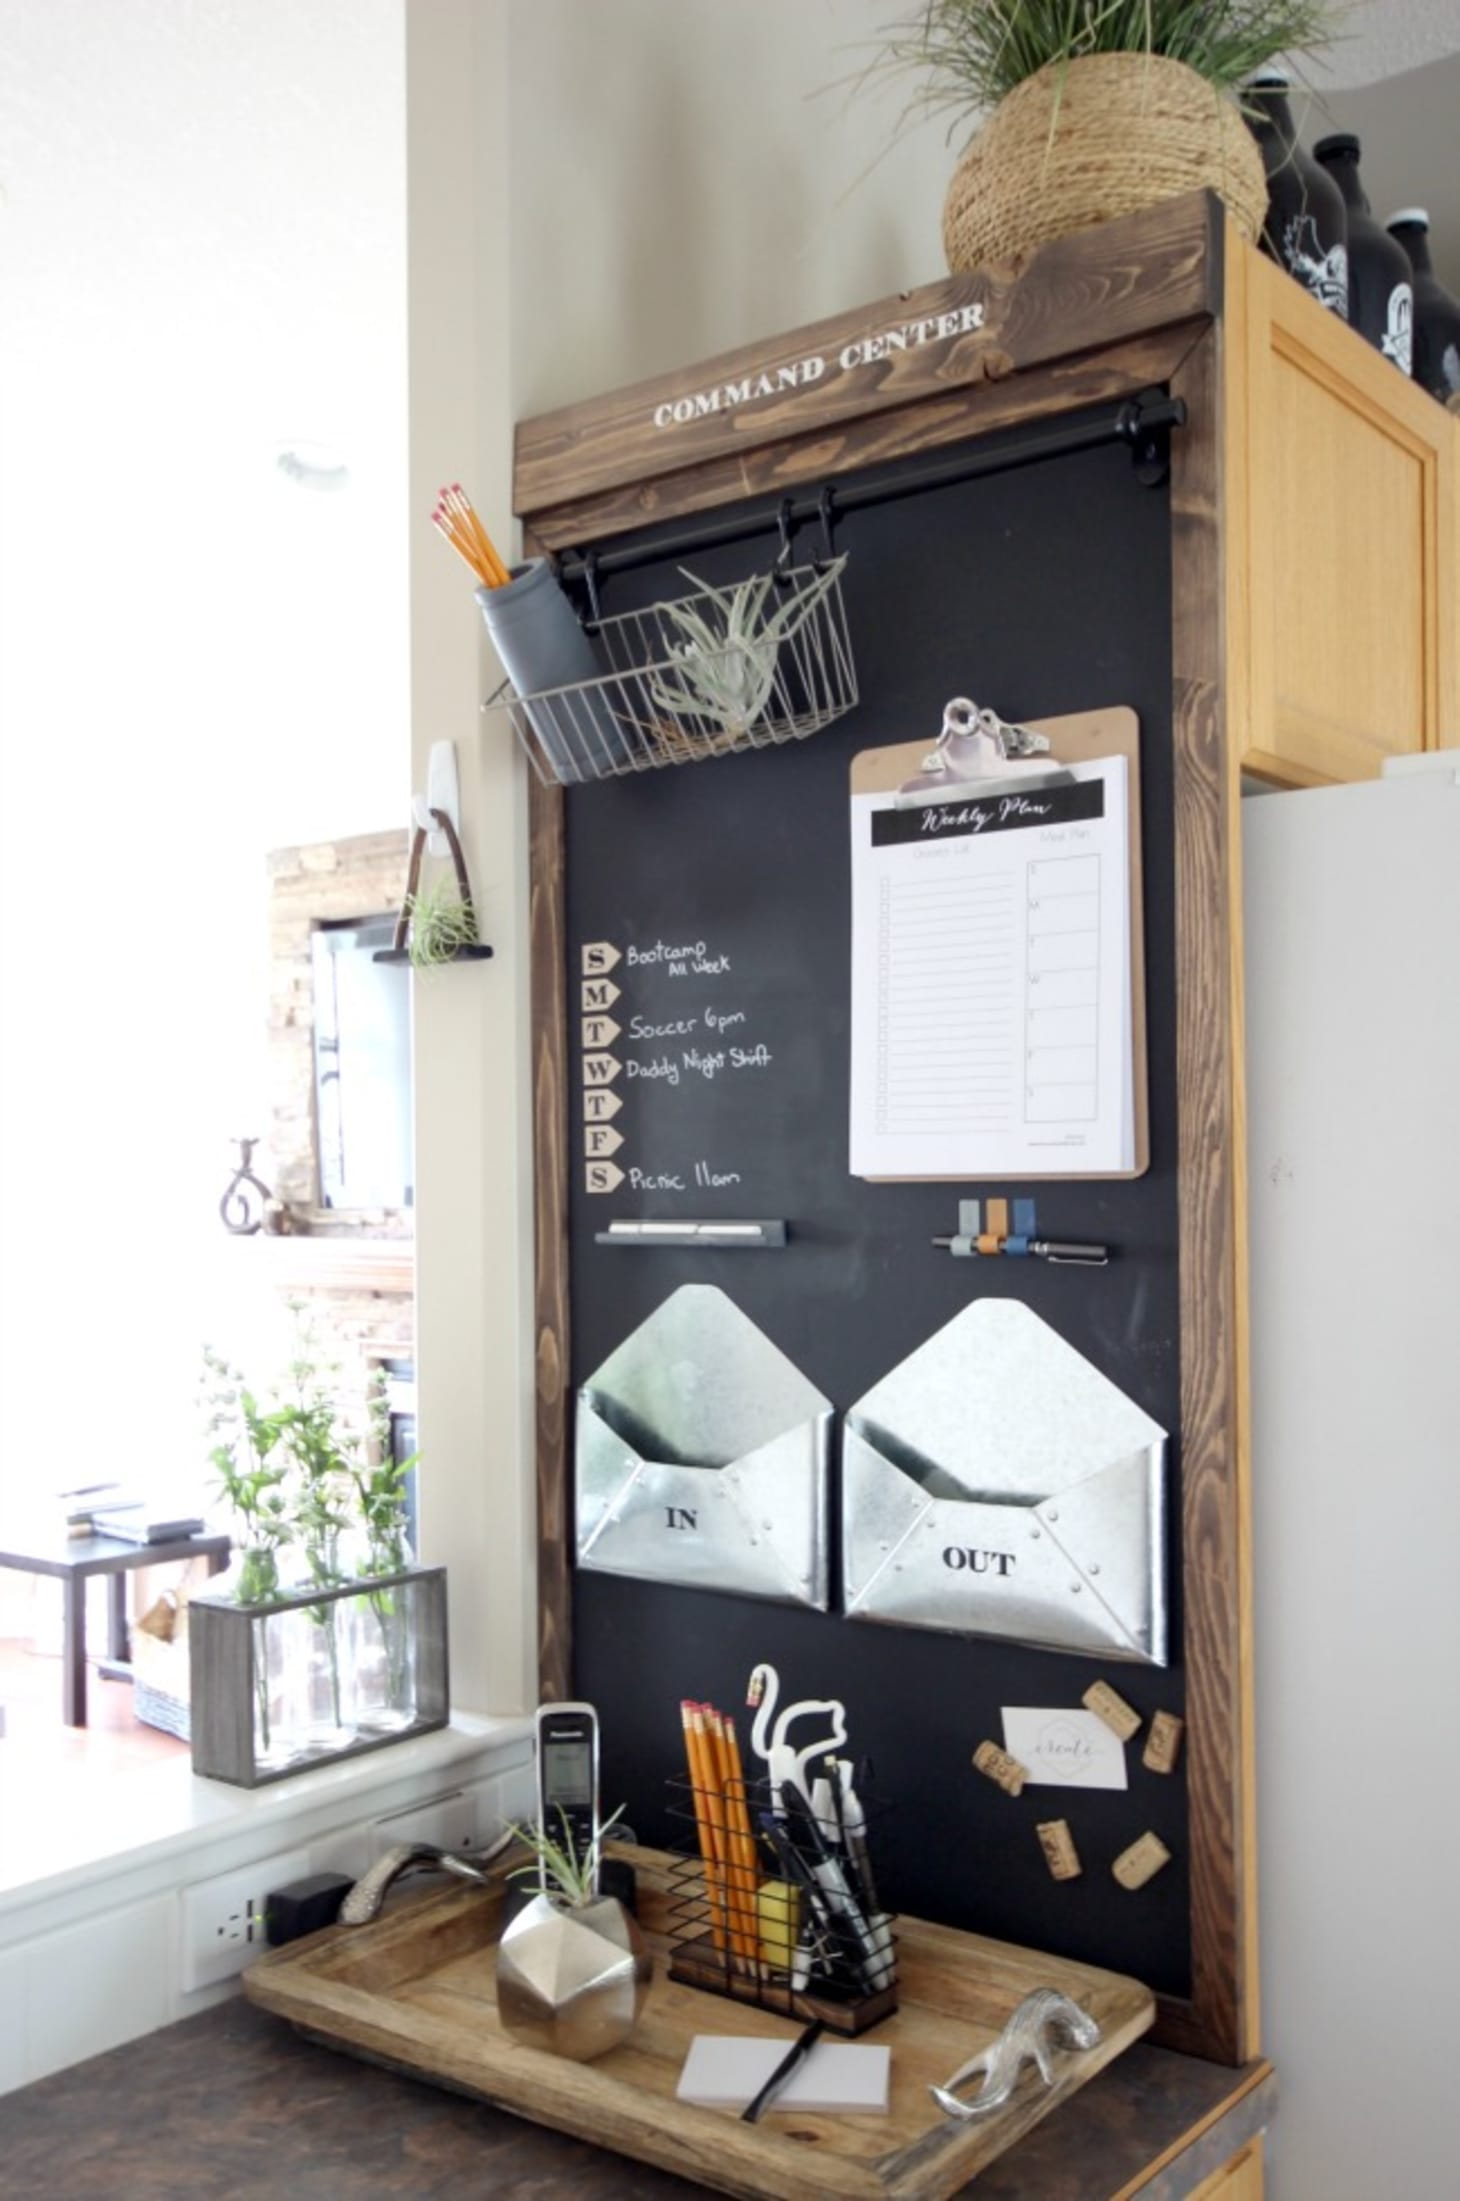 3 Kitchen Command Centers To Organize Your Family Kitchn